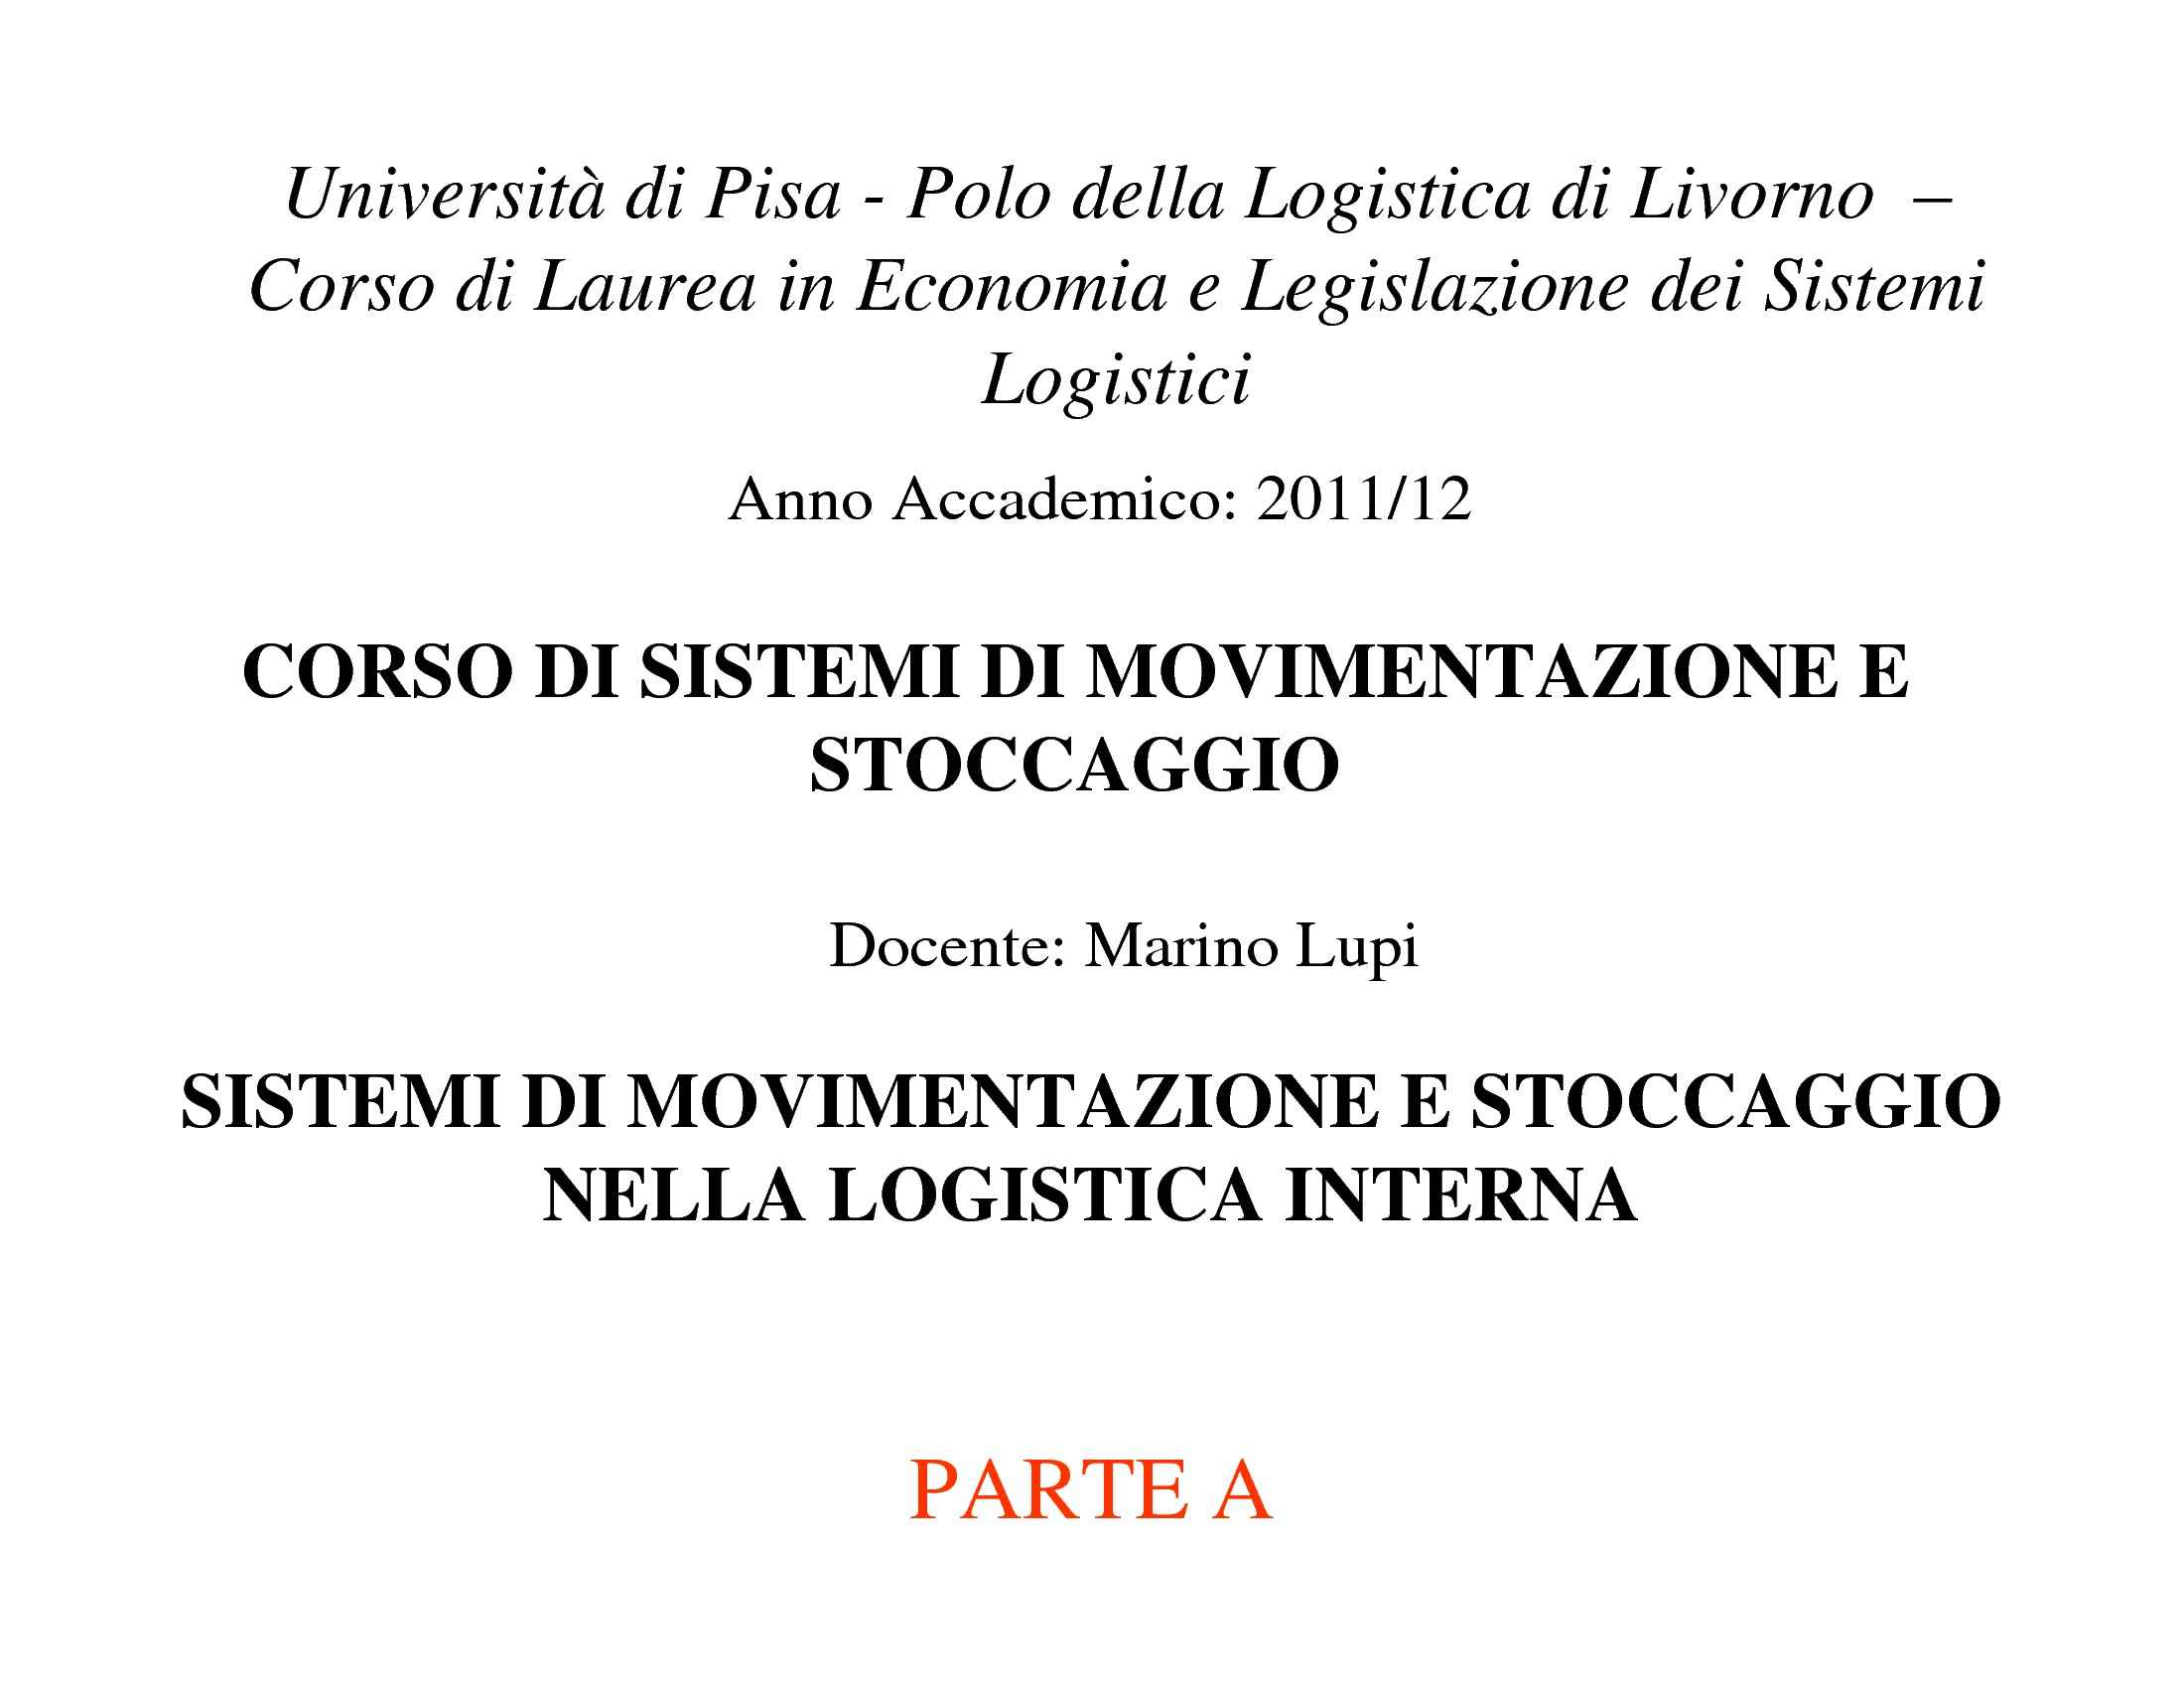 Logistica interna - Carrelli industriali e sistemi di stoccaggio